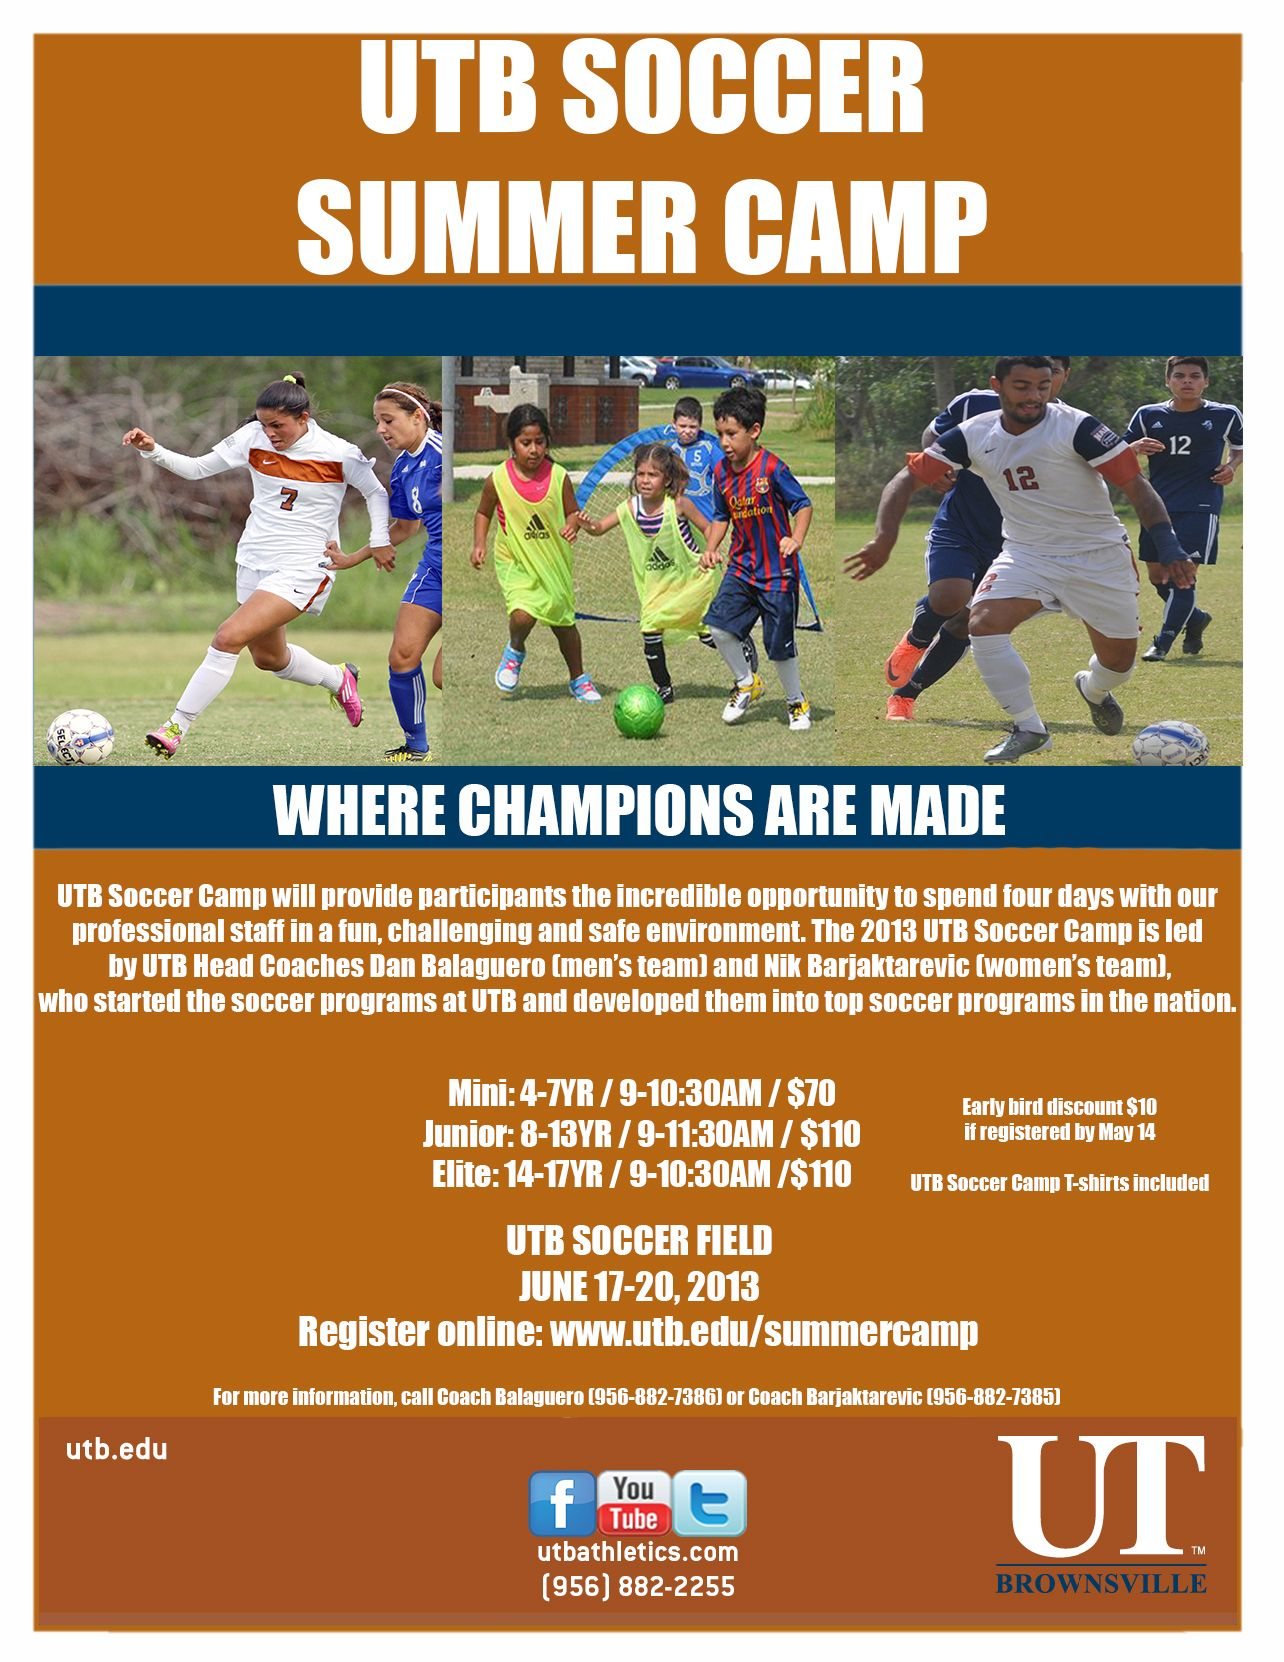 Don T Miss Out On This Summer S Youth Soccer Camps Click On Flyer For All The Information Www Utbathletics Com Soccer Camp Summer Youth Youth Soccer